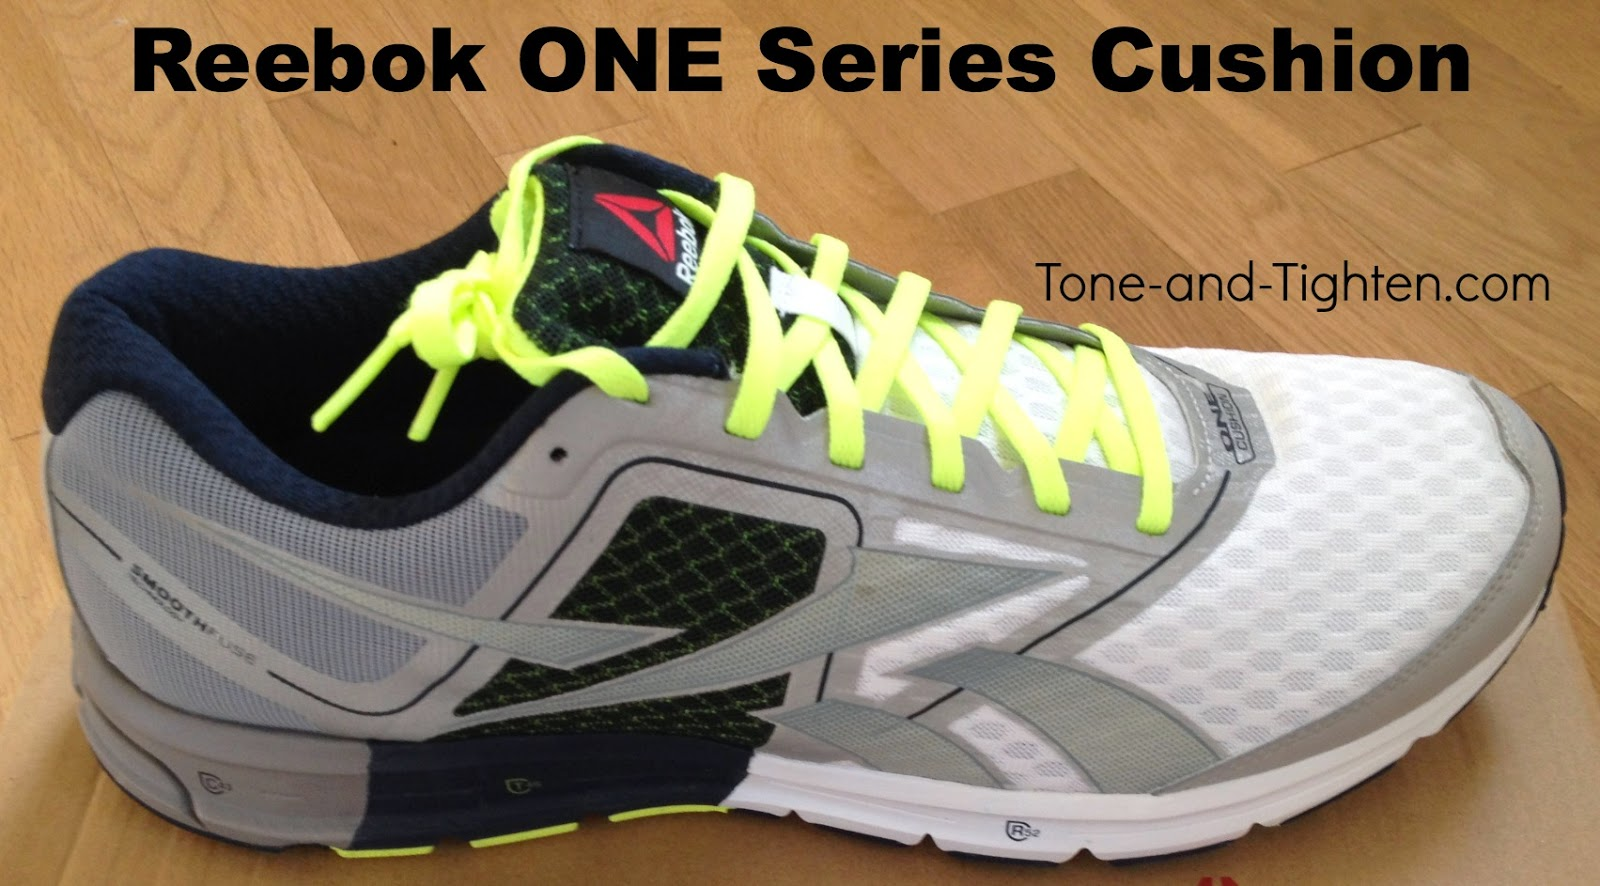 Neon Blonde Runner: Ninja Sparkle & the Efficacy of Free Shoe